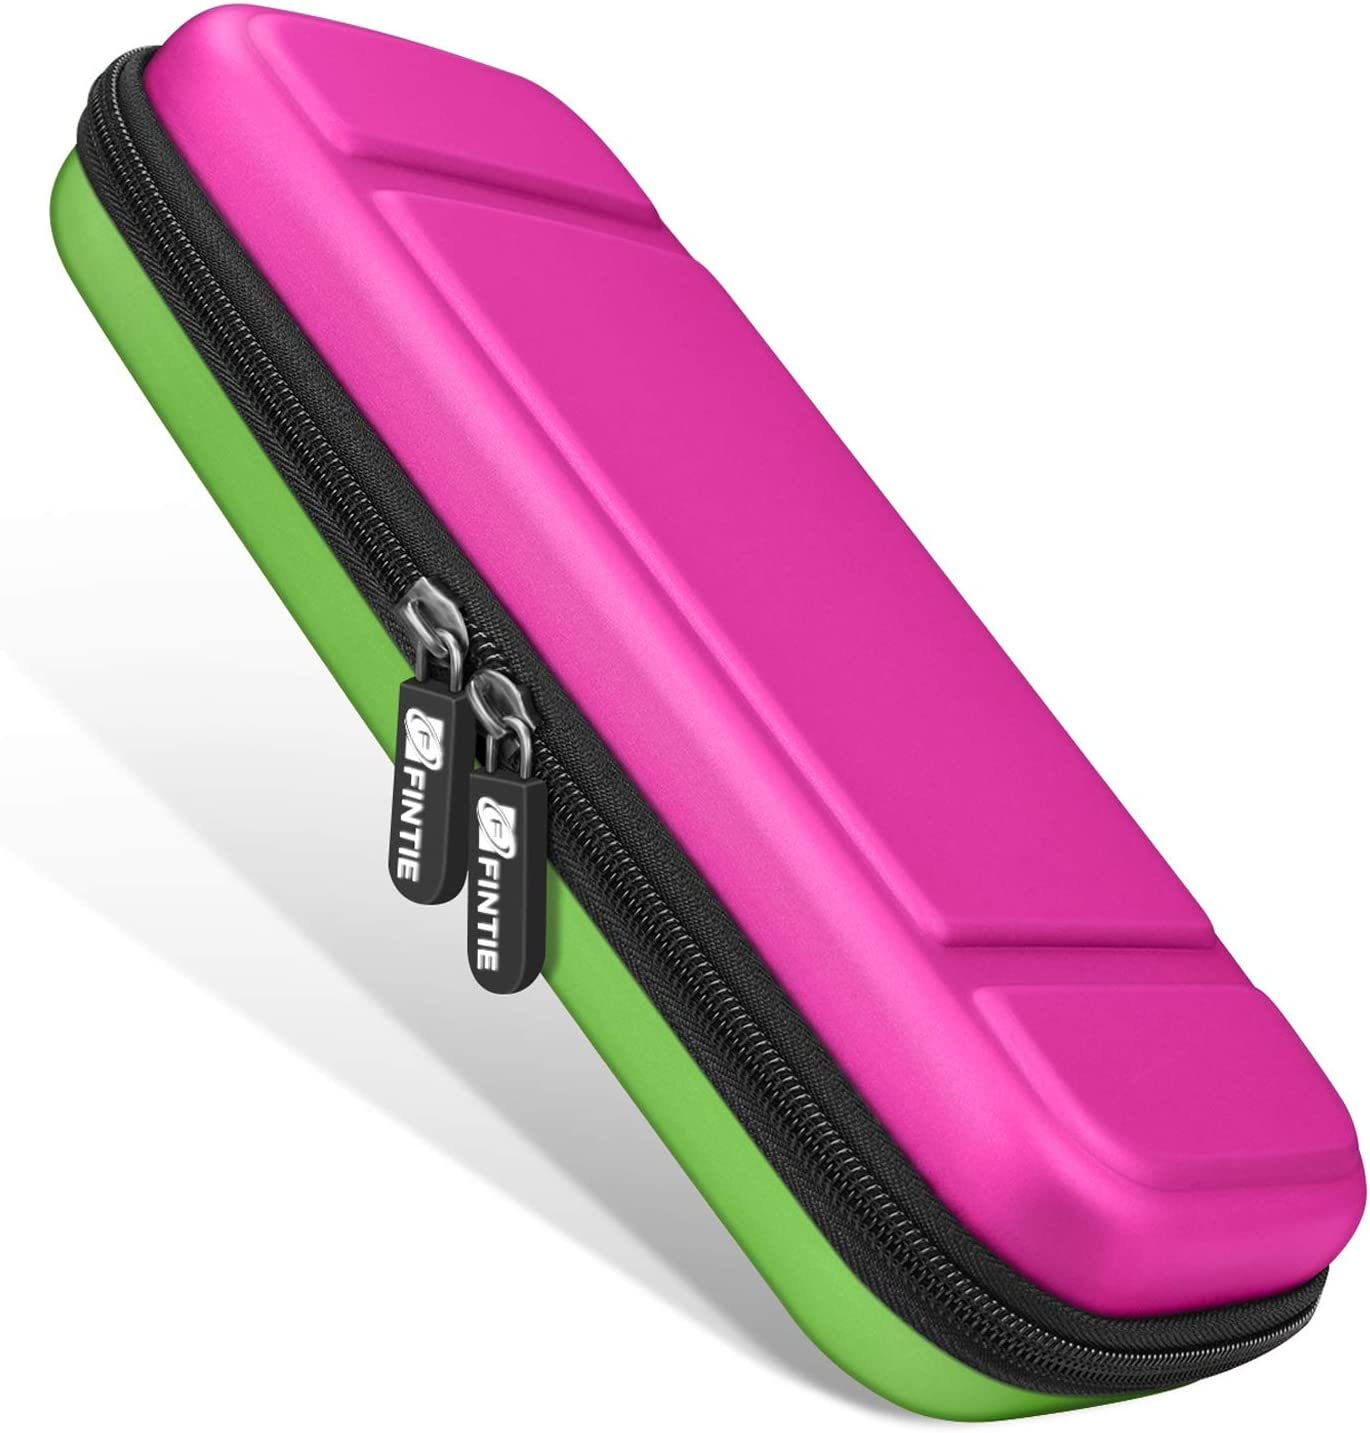 Fintie Carry Case for Nintendo Switch - [Shockproof] Hard Shell Protective Cover Travel Bag w/10 Game Card Slots, Inner Pocket for Nintendo Switch Console Joy-Con & Accessories, Magenta Green